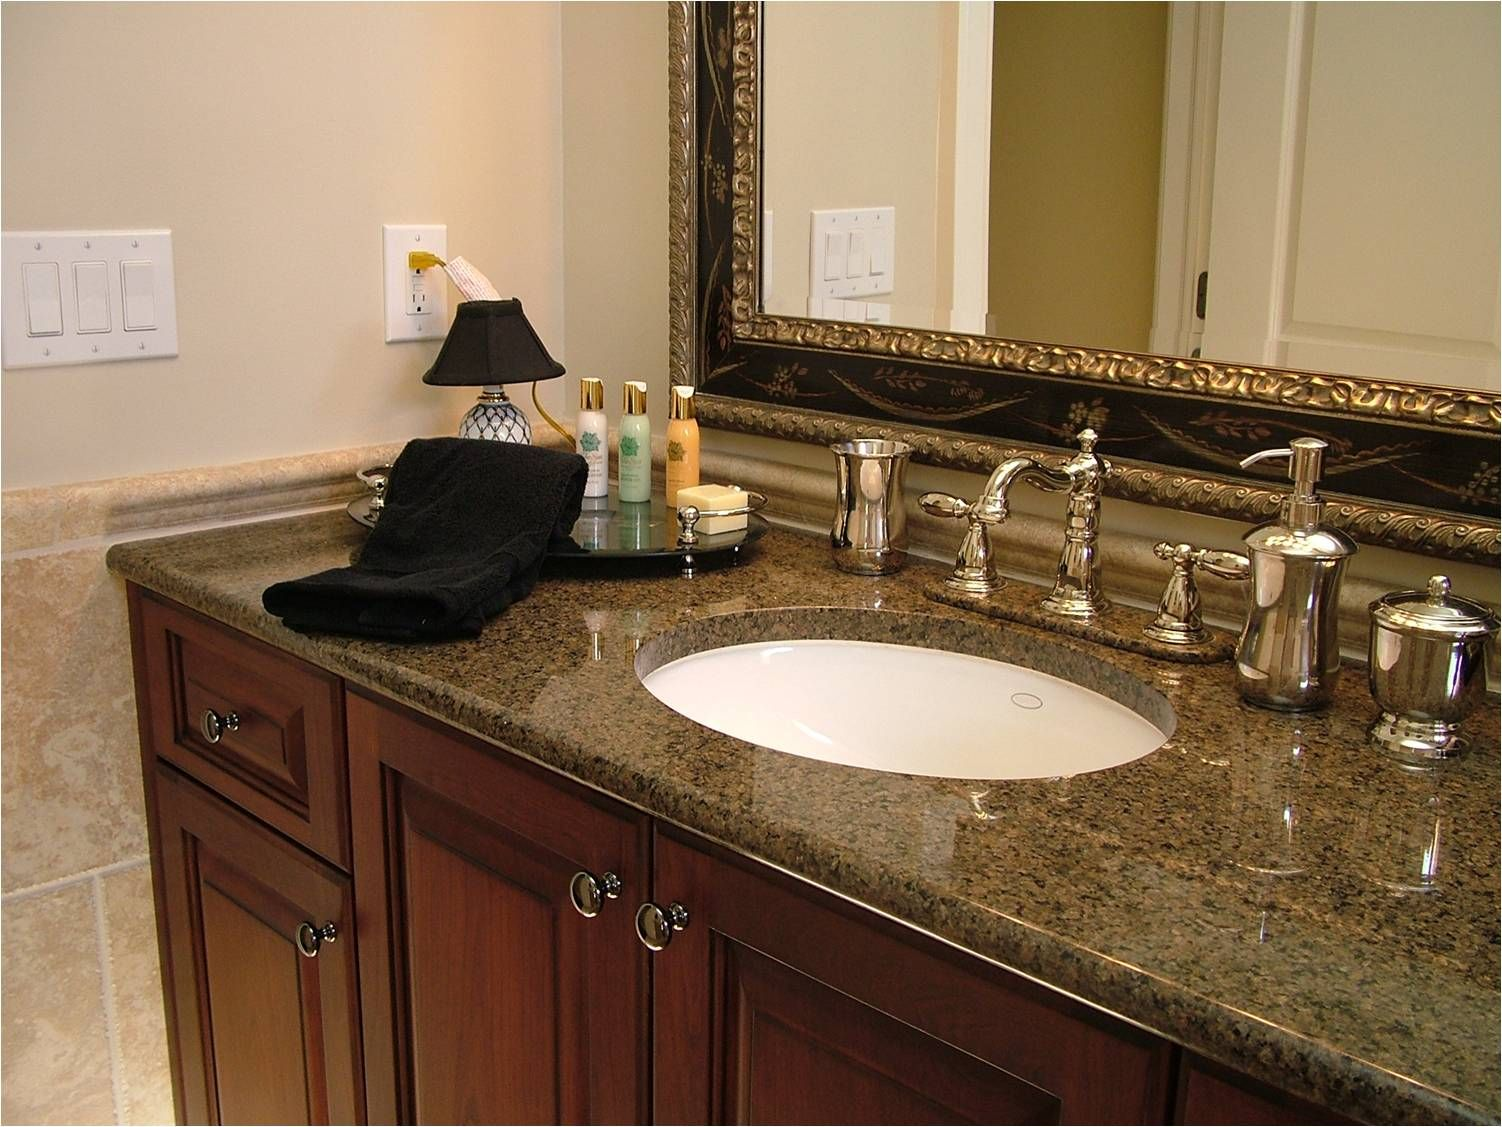 Daveu0027s Granite | Natural Stone, Granite, Quartz Countertops | Chesapeake, Virginia  Beach, Norfolk, Portsmouth U0026 Suffolk